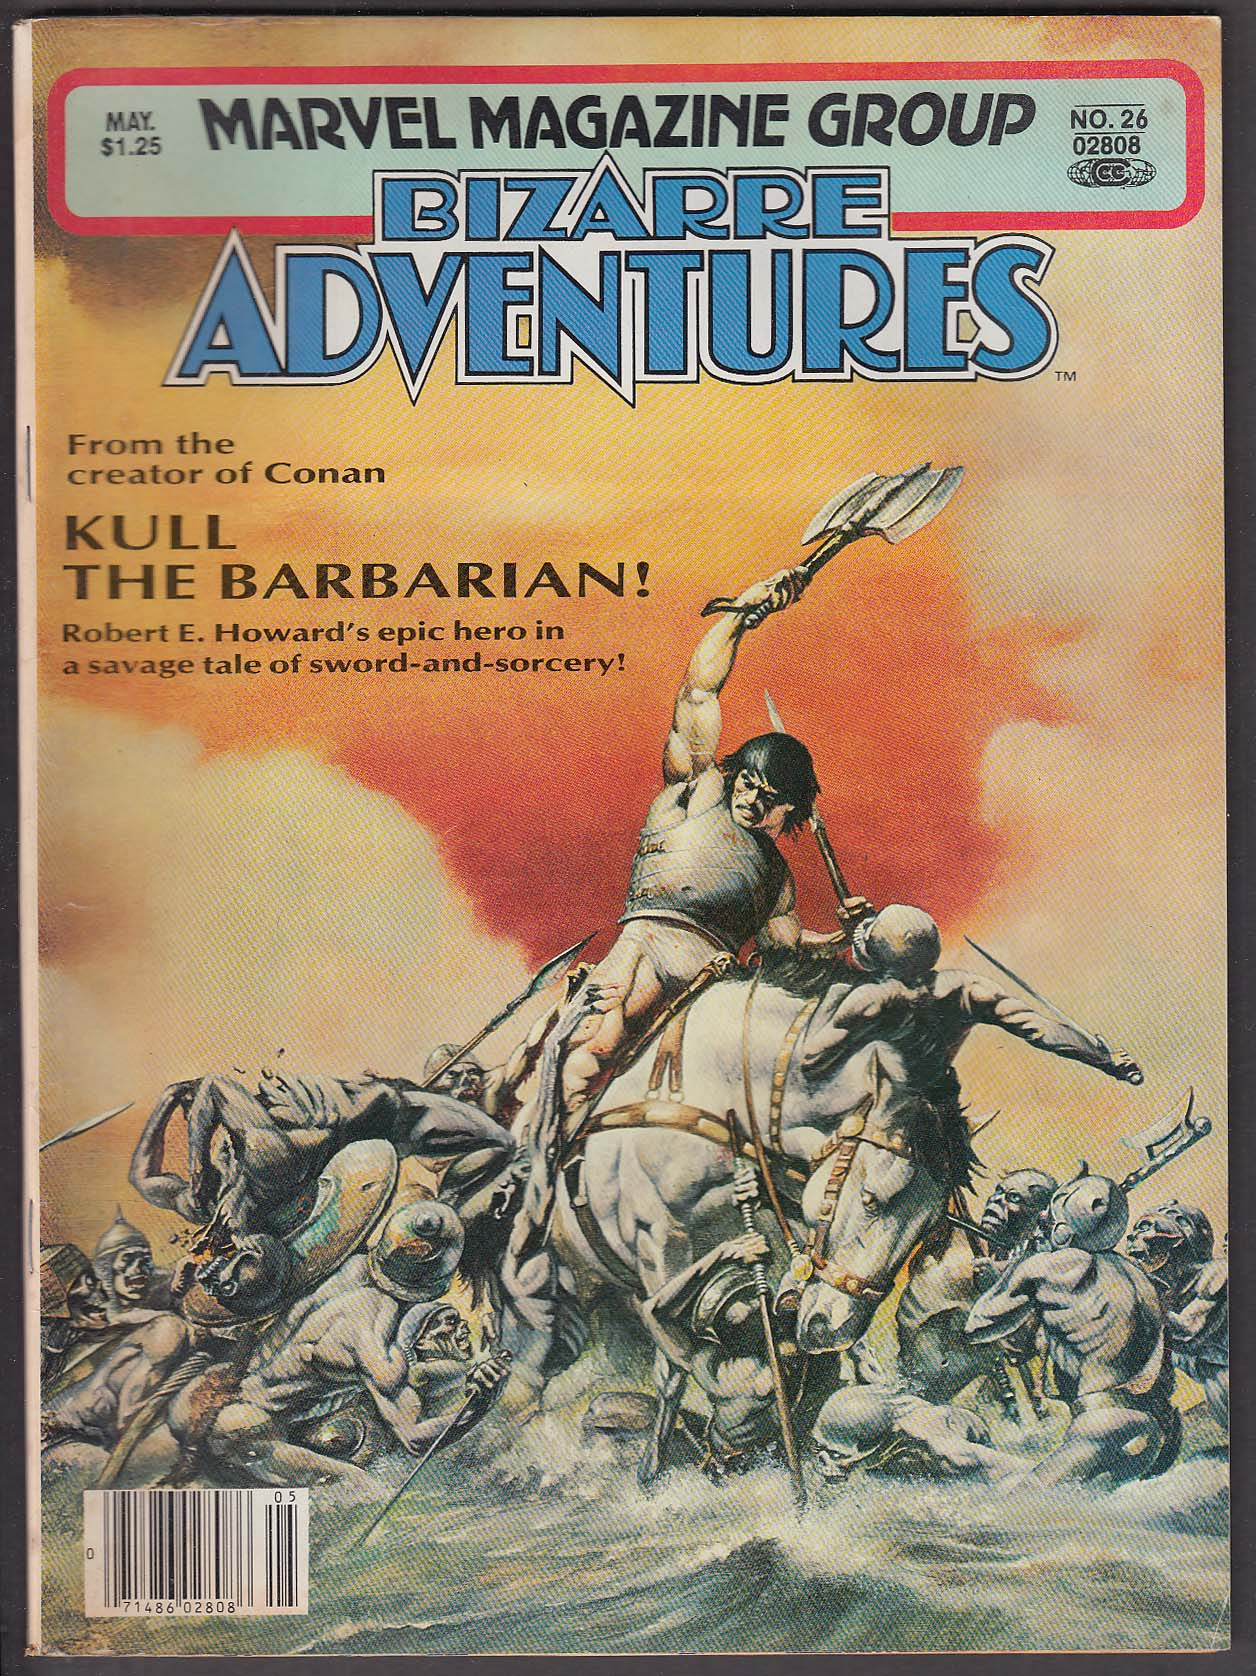 BIZARRE ADVENTURES #26 Marvel comic book 5 1981 Kull the Barbarian ++